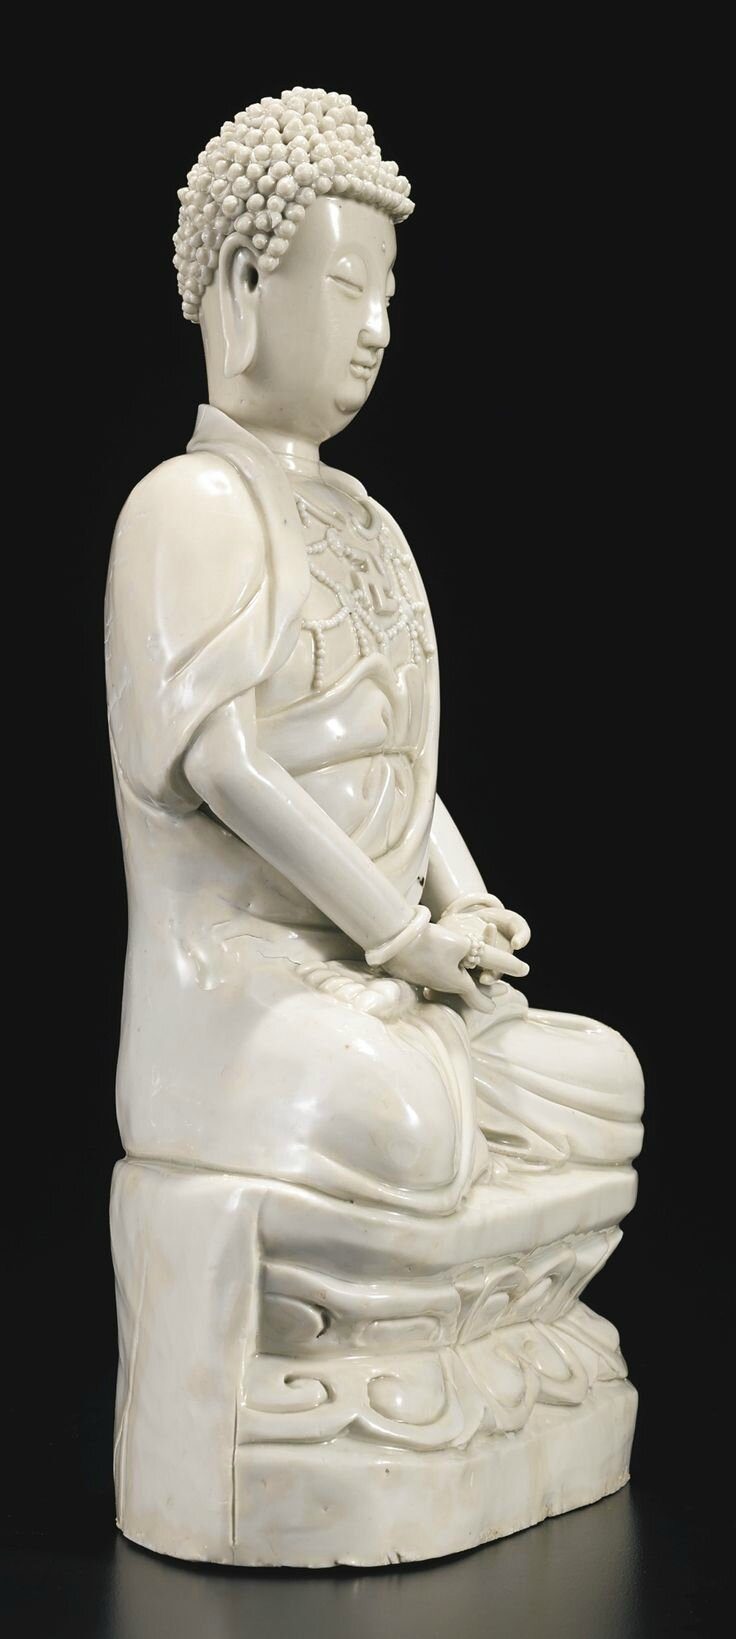 A Dehua figure of Buddha, China, Qing dynasty, 17th-18th century